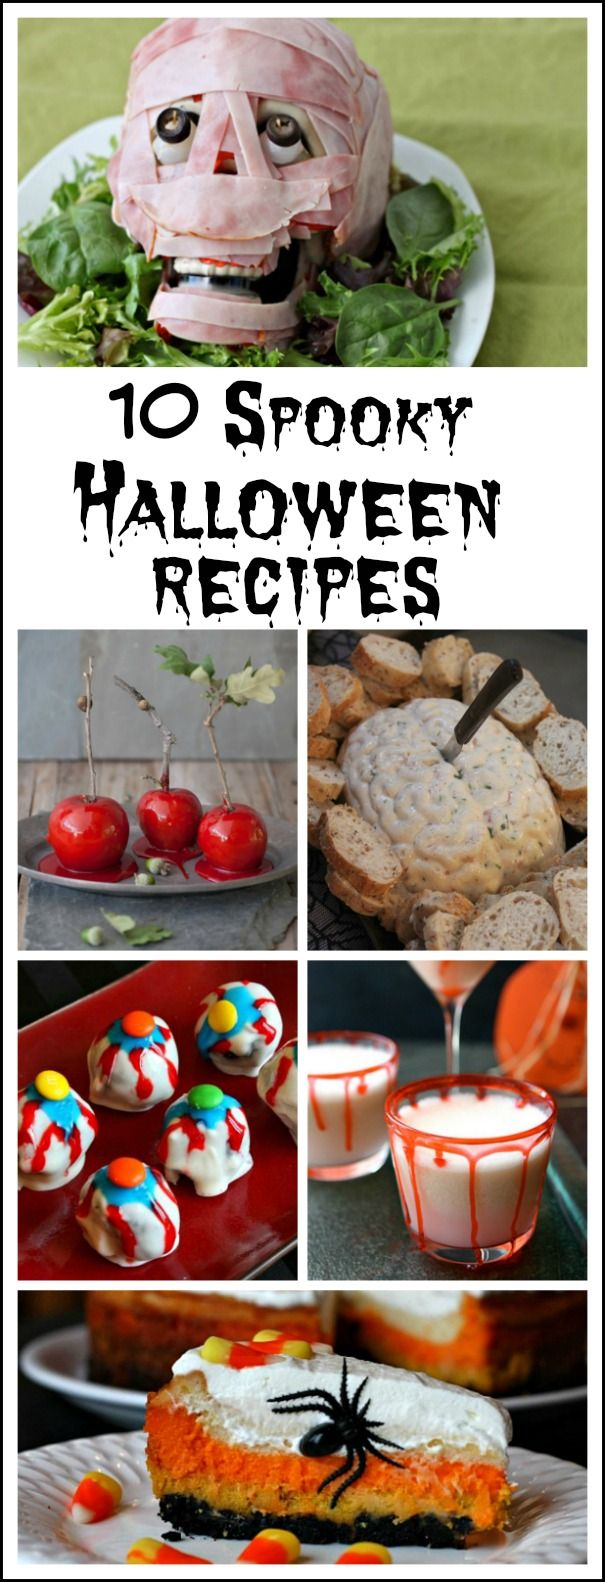 10 spooky halloween recipes meat brain eyeball truffles recipe brain dip recipe - Halloween Meat Recipes